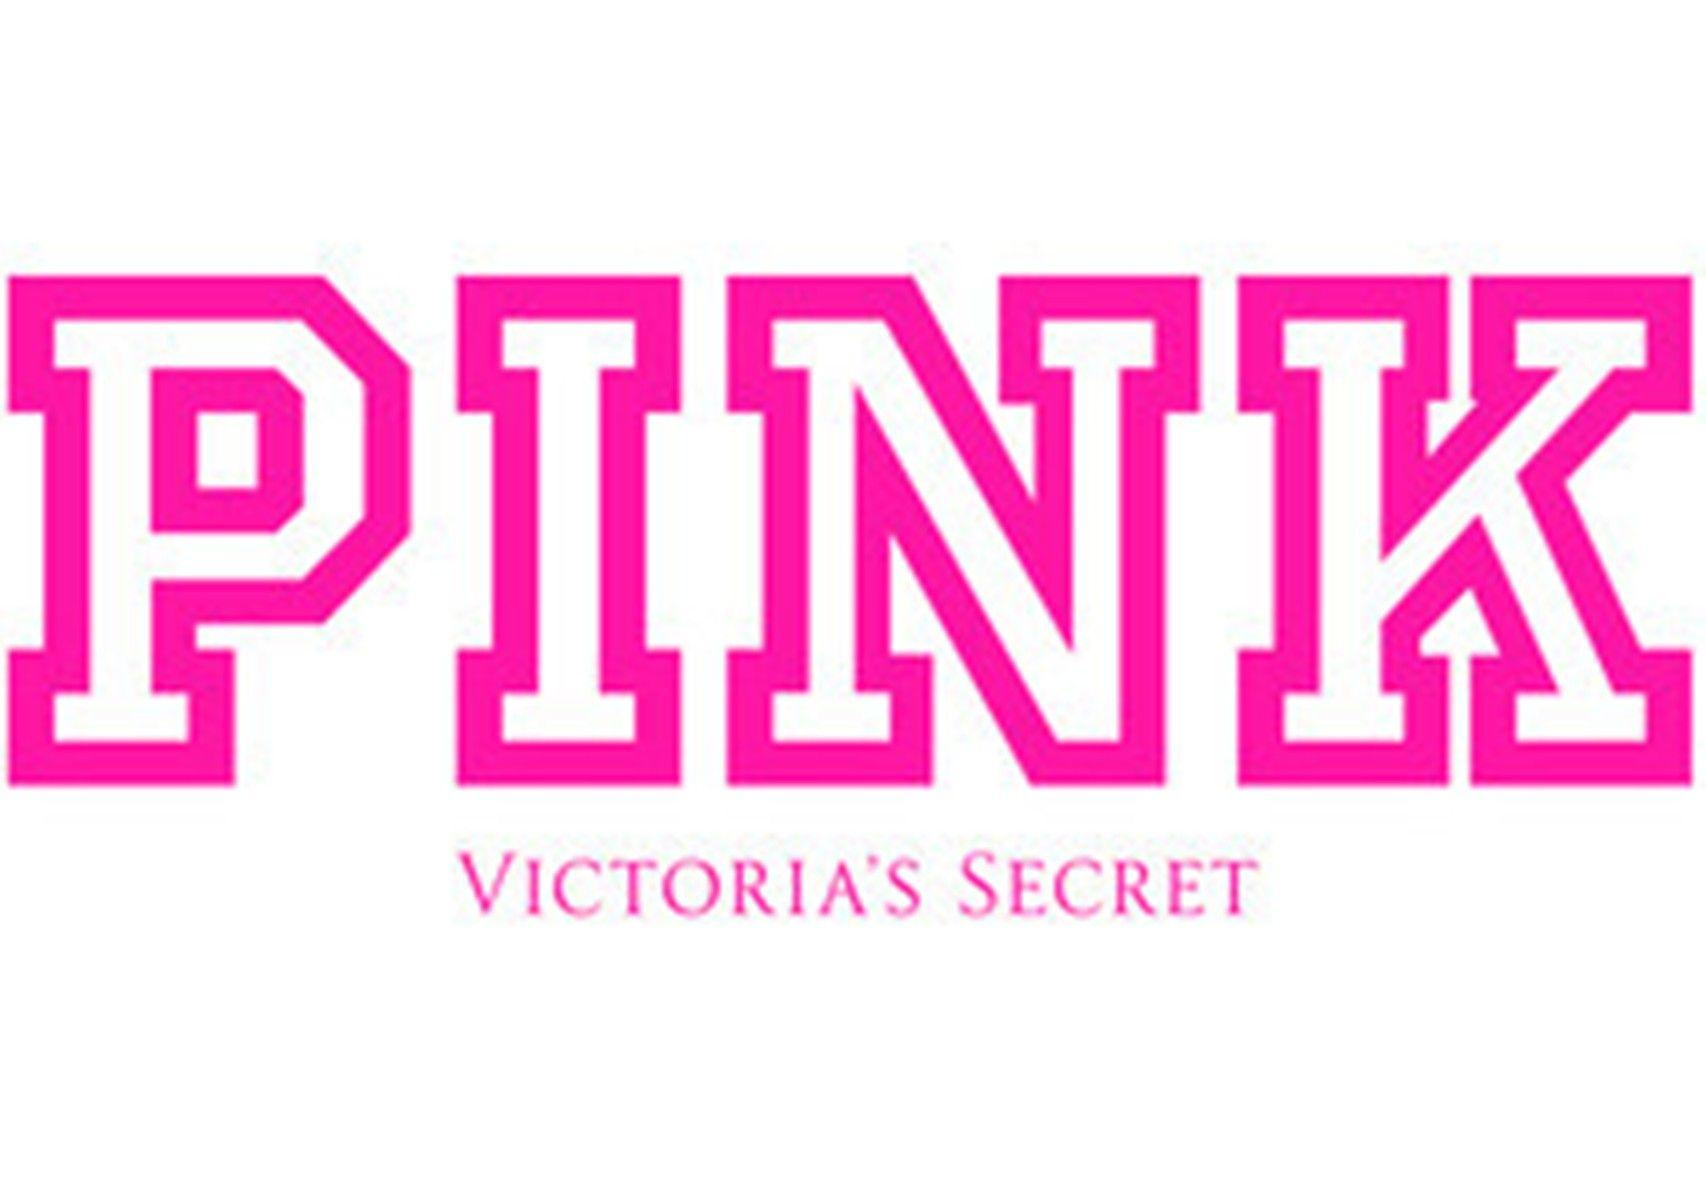 Victoria Secret Logo Wallpaper Desktop Background Wallpapers HD